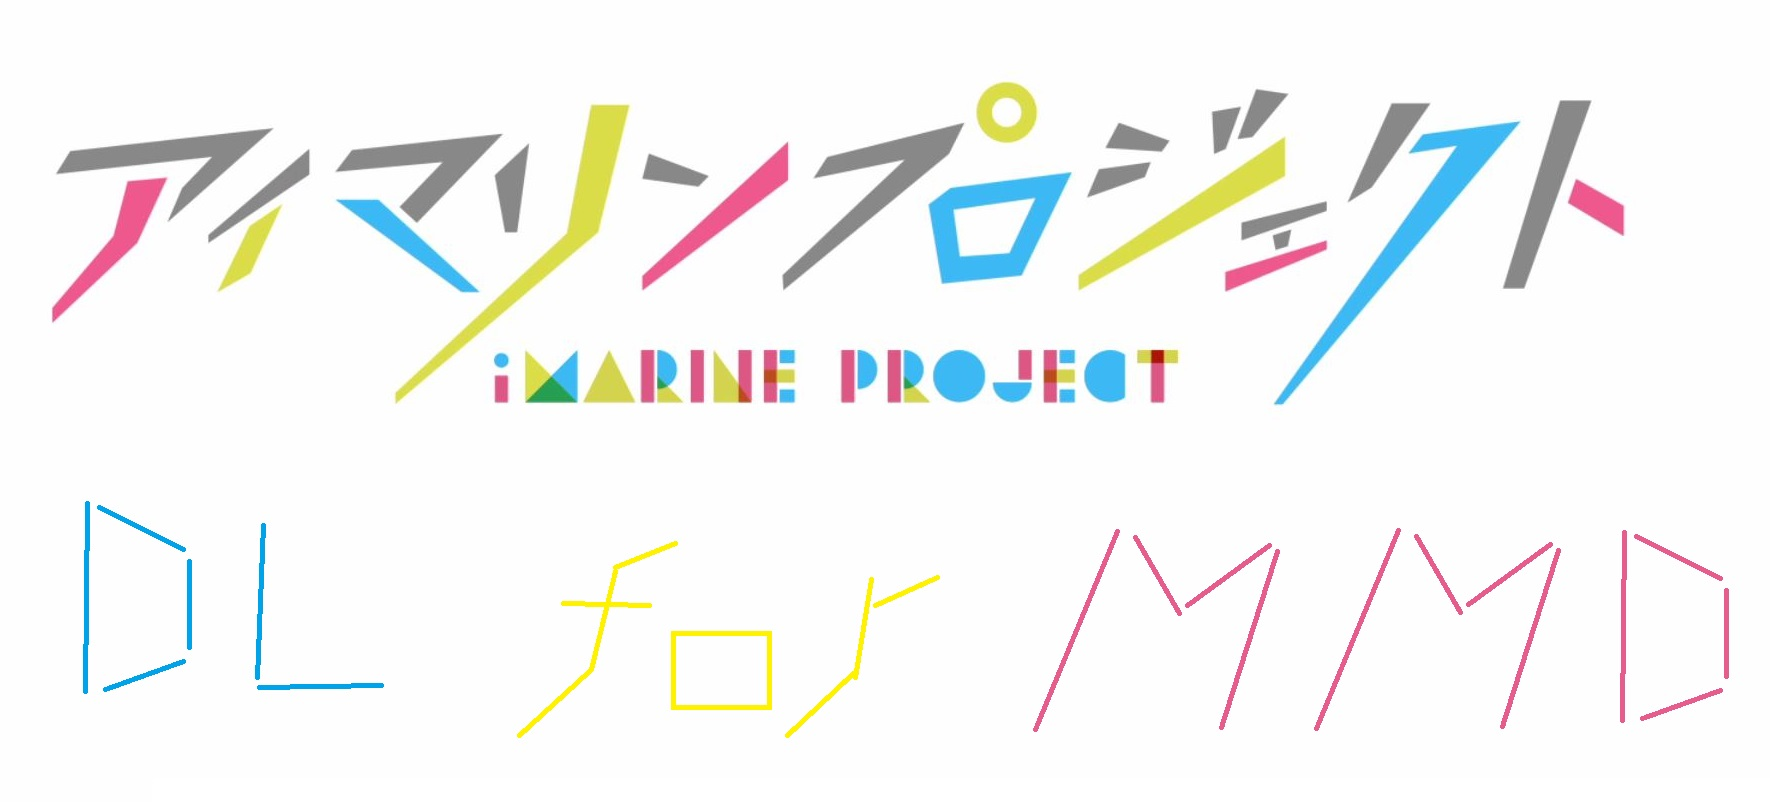 [MMD] iMarine Project Models/Motions +DOWNLOAD